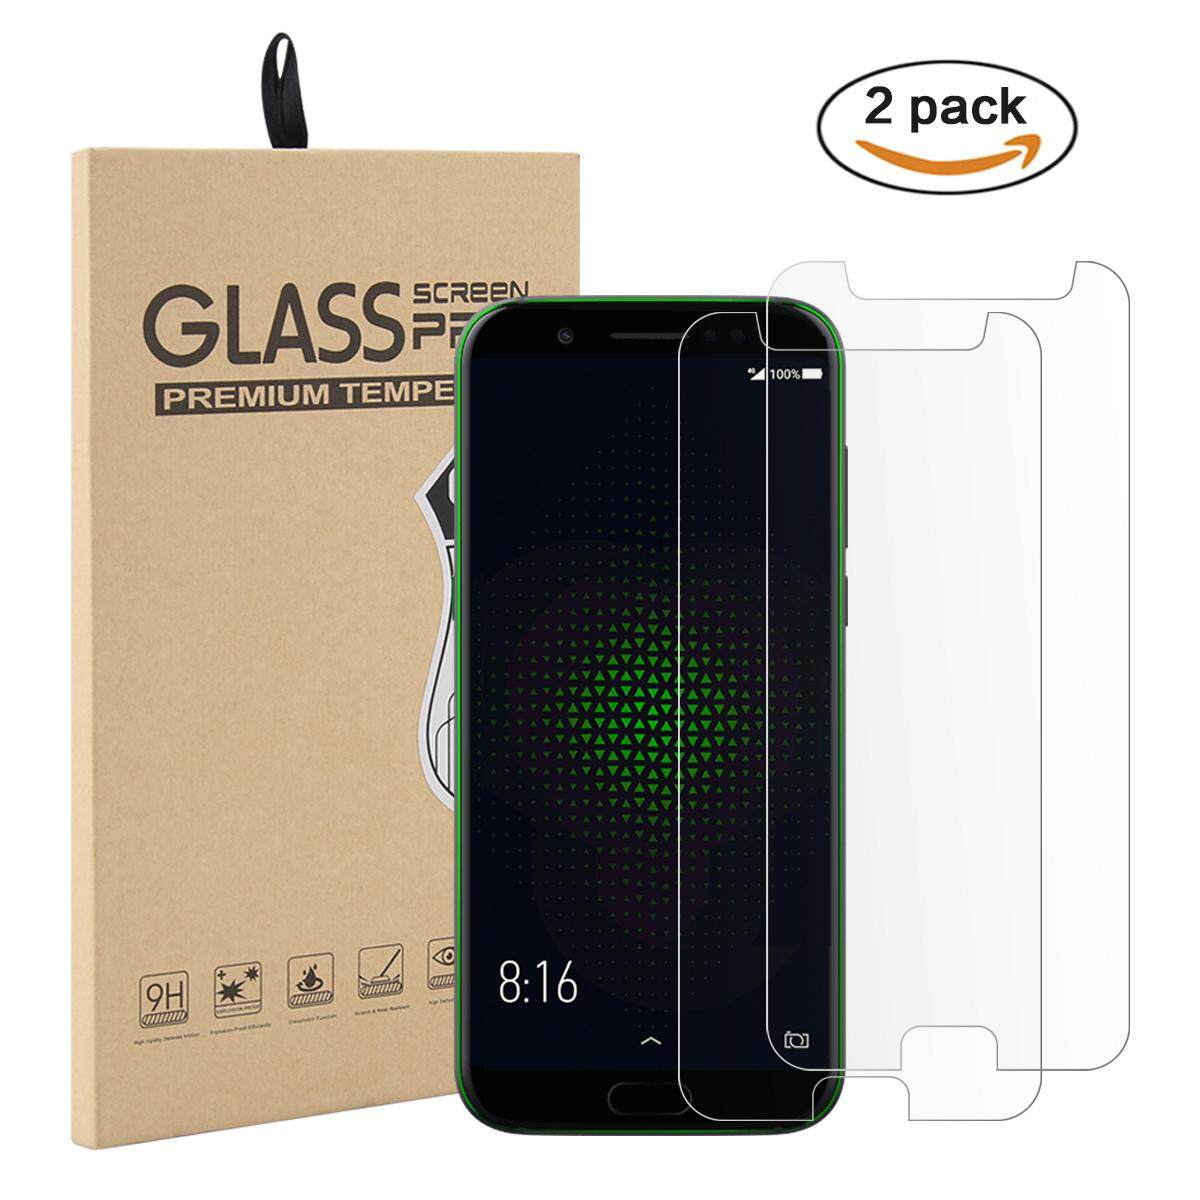 Hình thu nhỏ Moonmini Case Cover for 2 Pack Tempered Glass Screen Protector Film Anti-Scratch Screen Cover for Xiaomi Black Shark